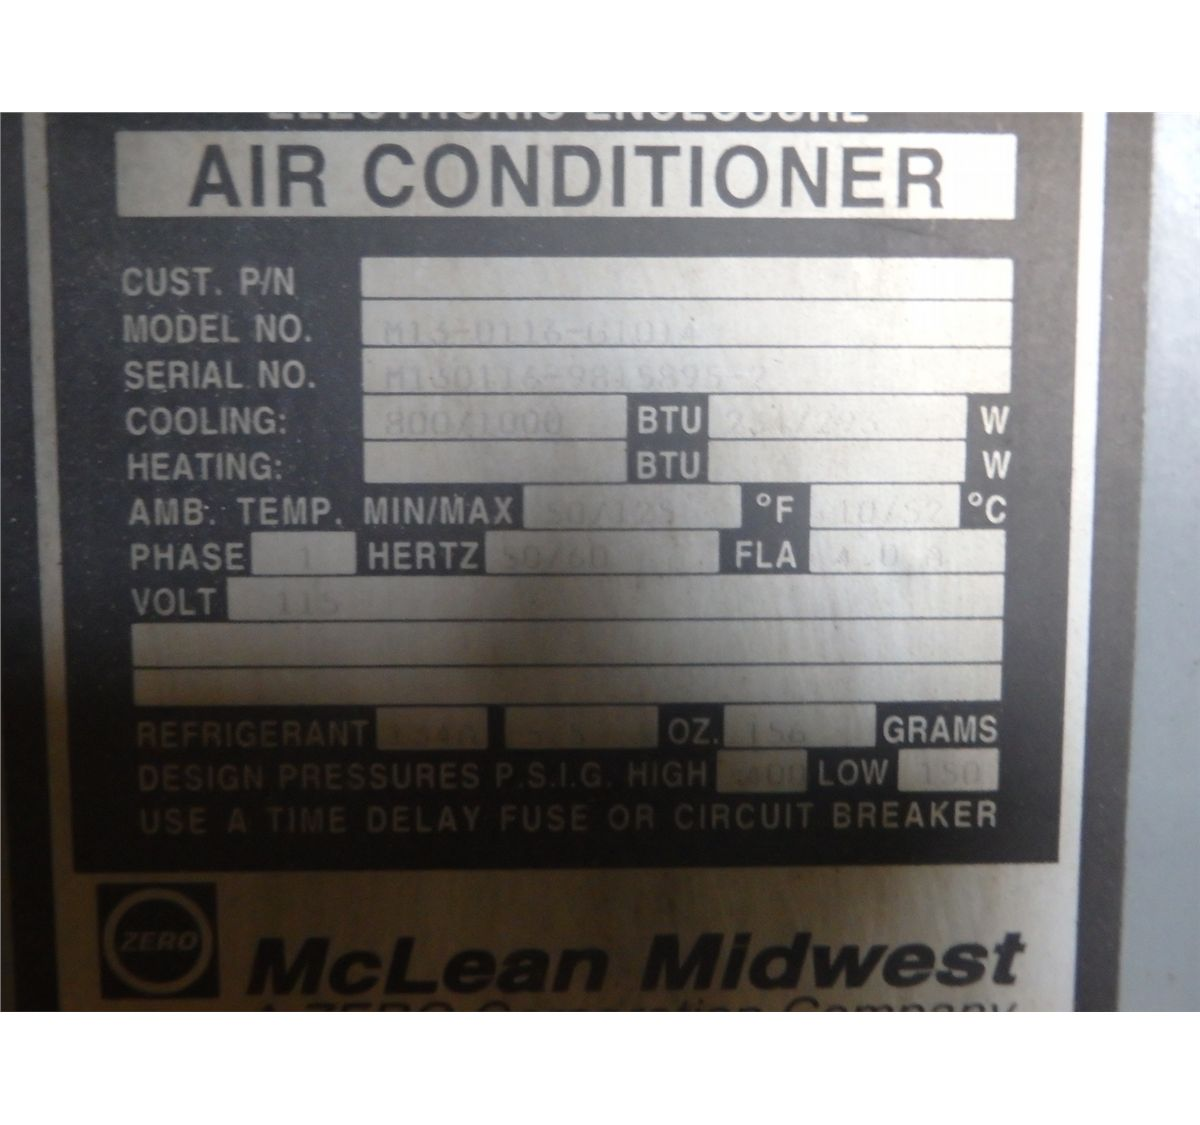 image 7 mclean midwest m13 0116 g1014 electrical box chiller air conditioner [ 1200 x 1125 Pixel ]